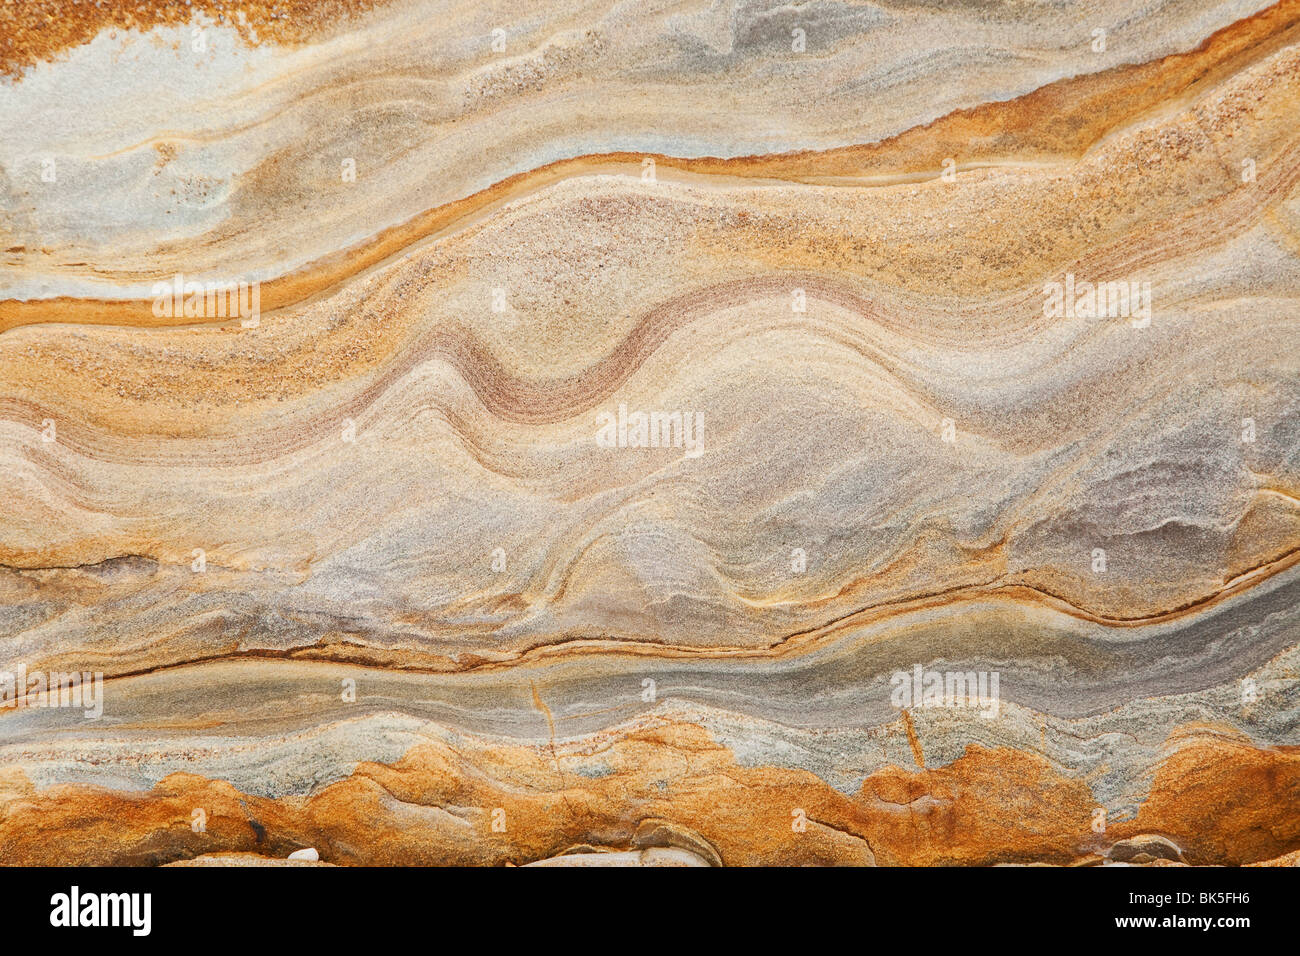 sedimentary rock sandstone background - Stock Image